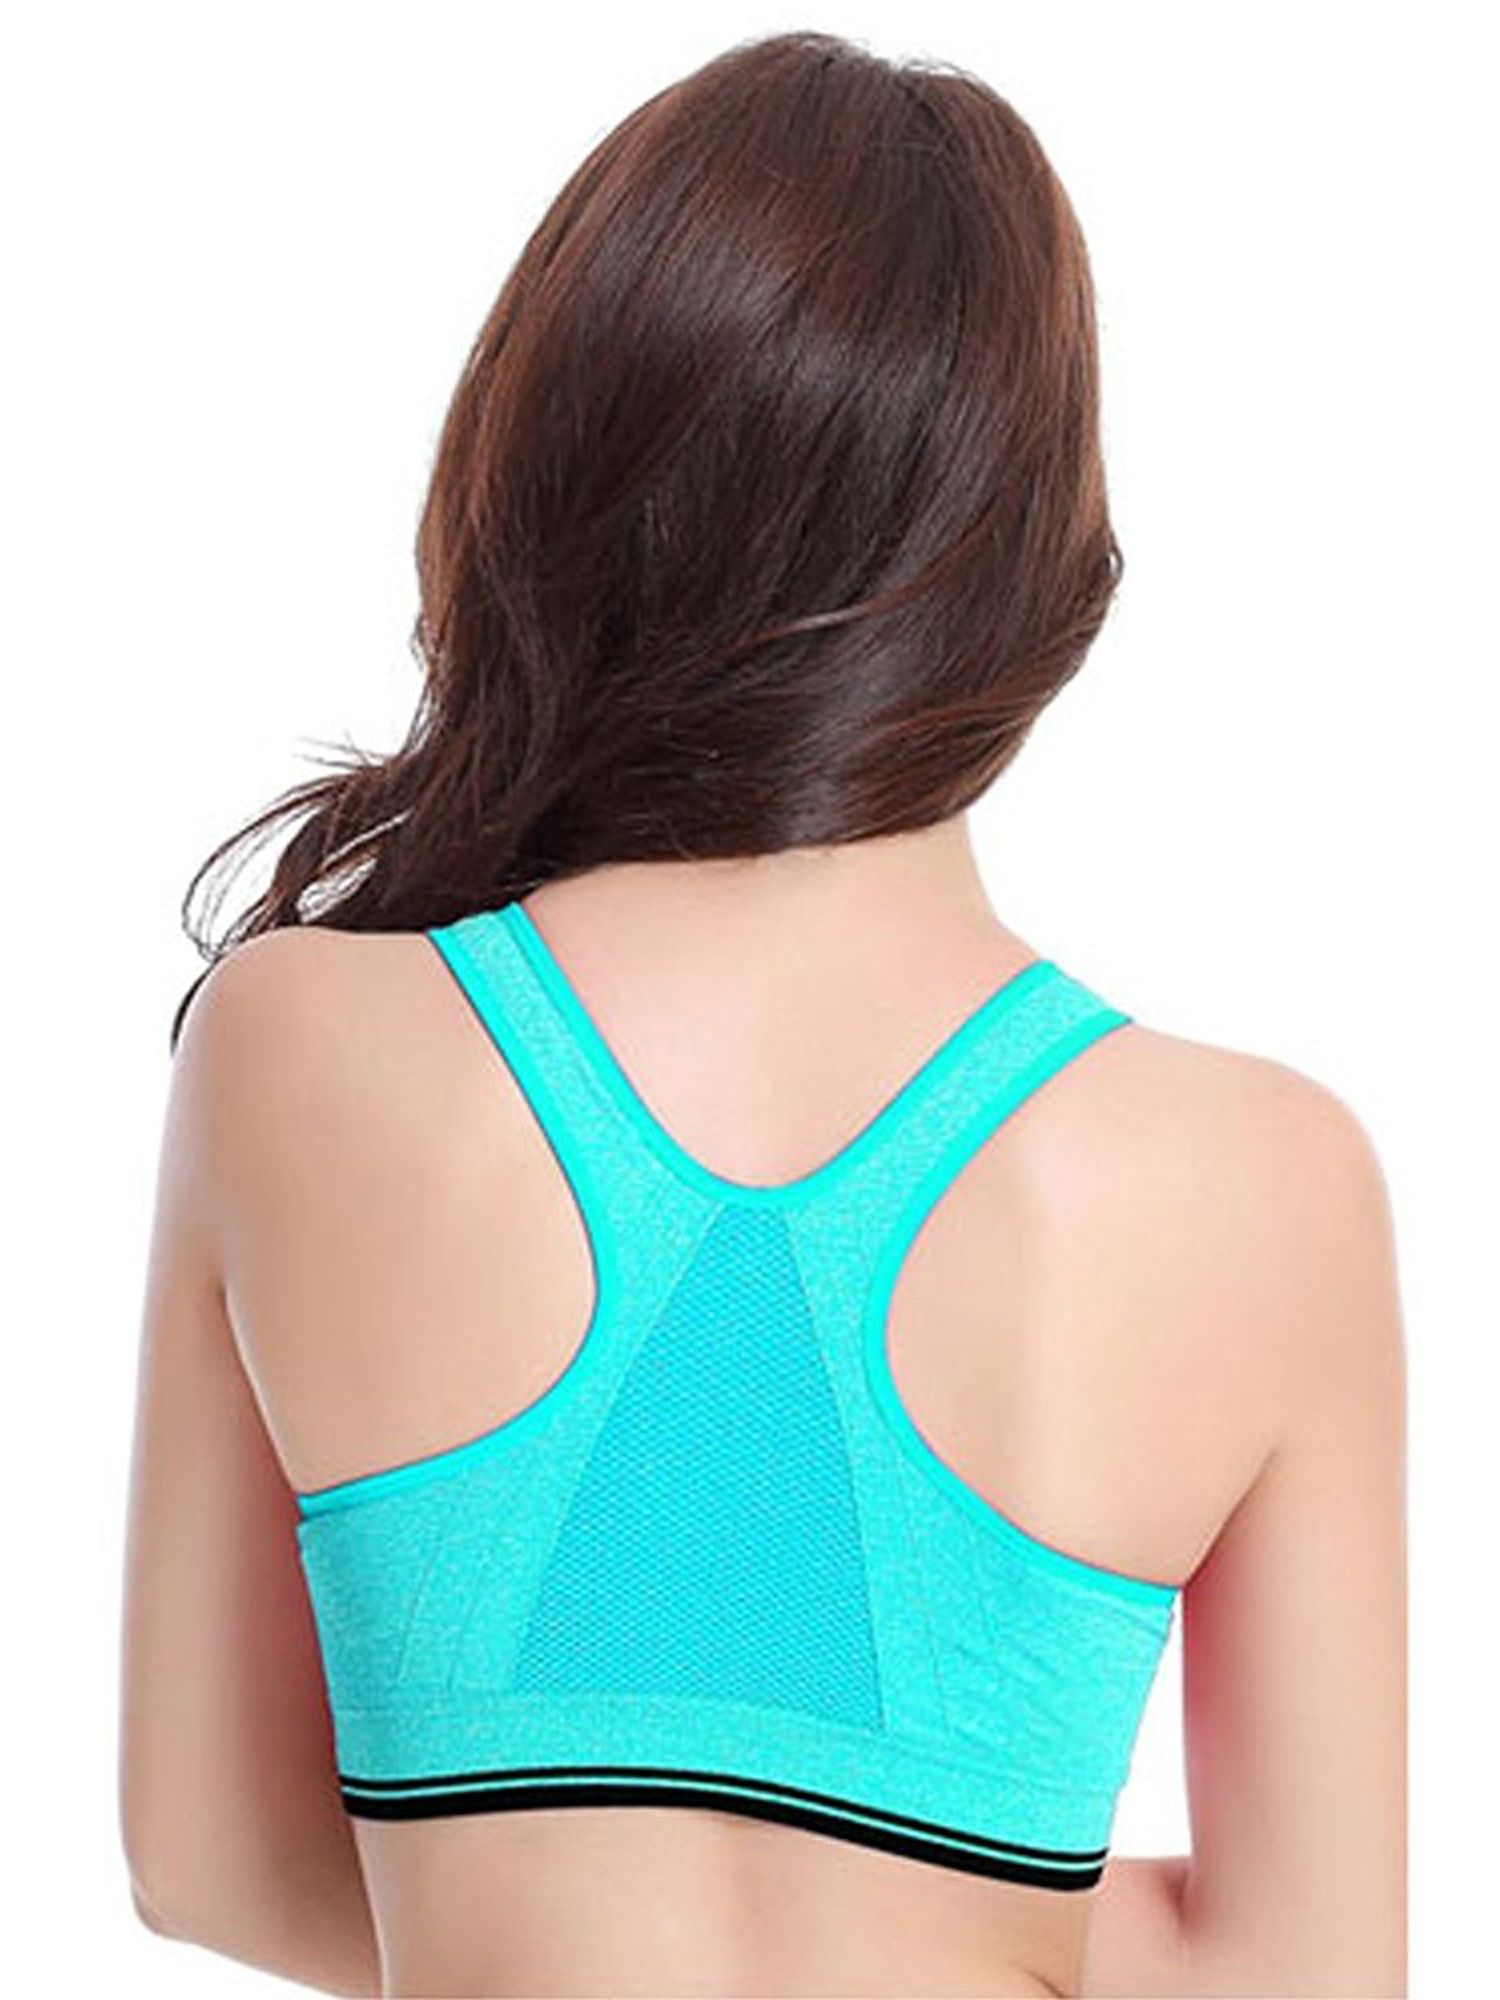 e39375e00c SAYFUT Women s Seamless Sport Bra Active Gym Yoga Workout Sports Bras  Wireless Zip Front Mesh Racerback